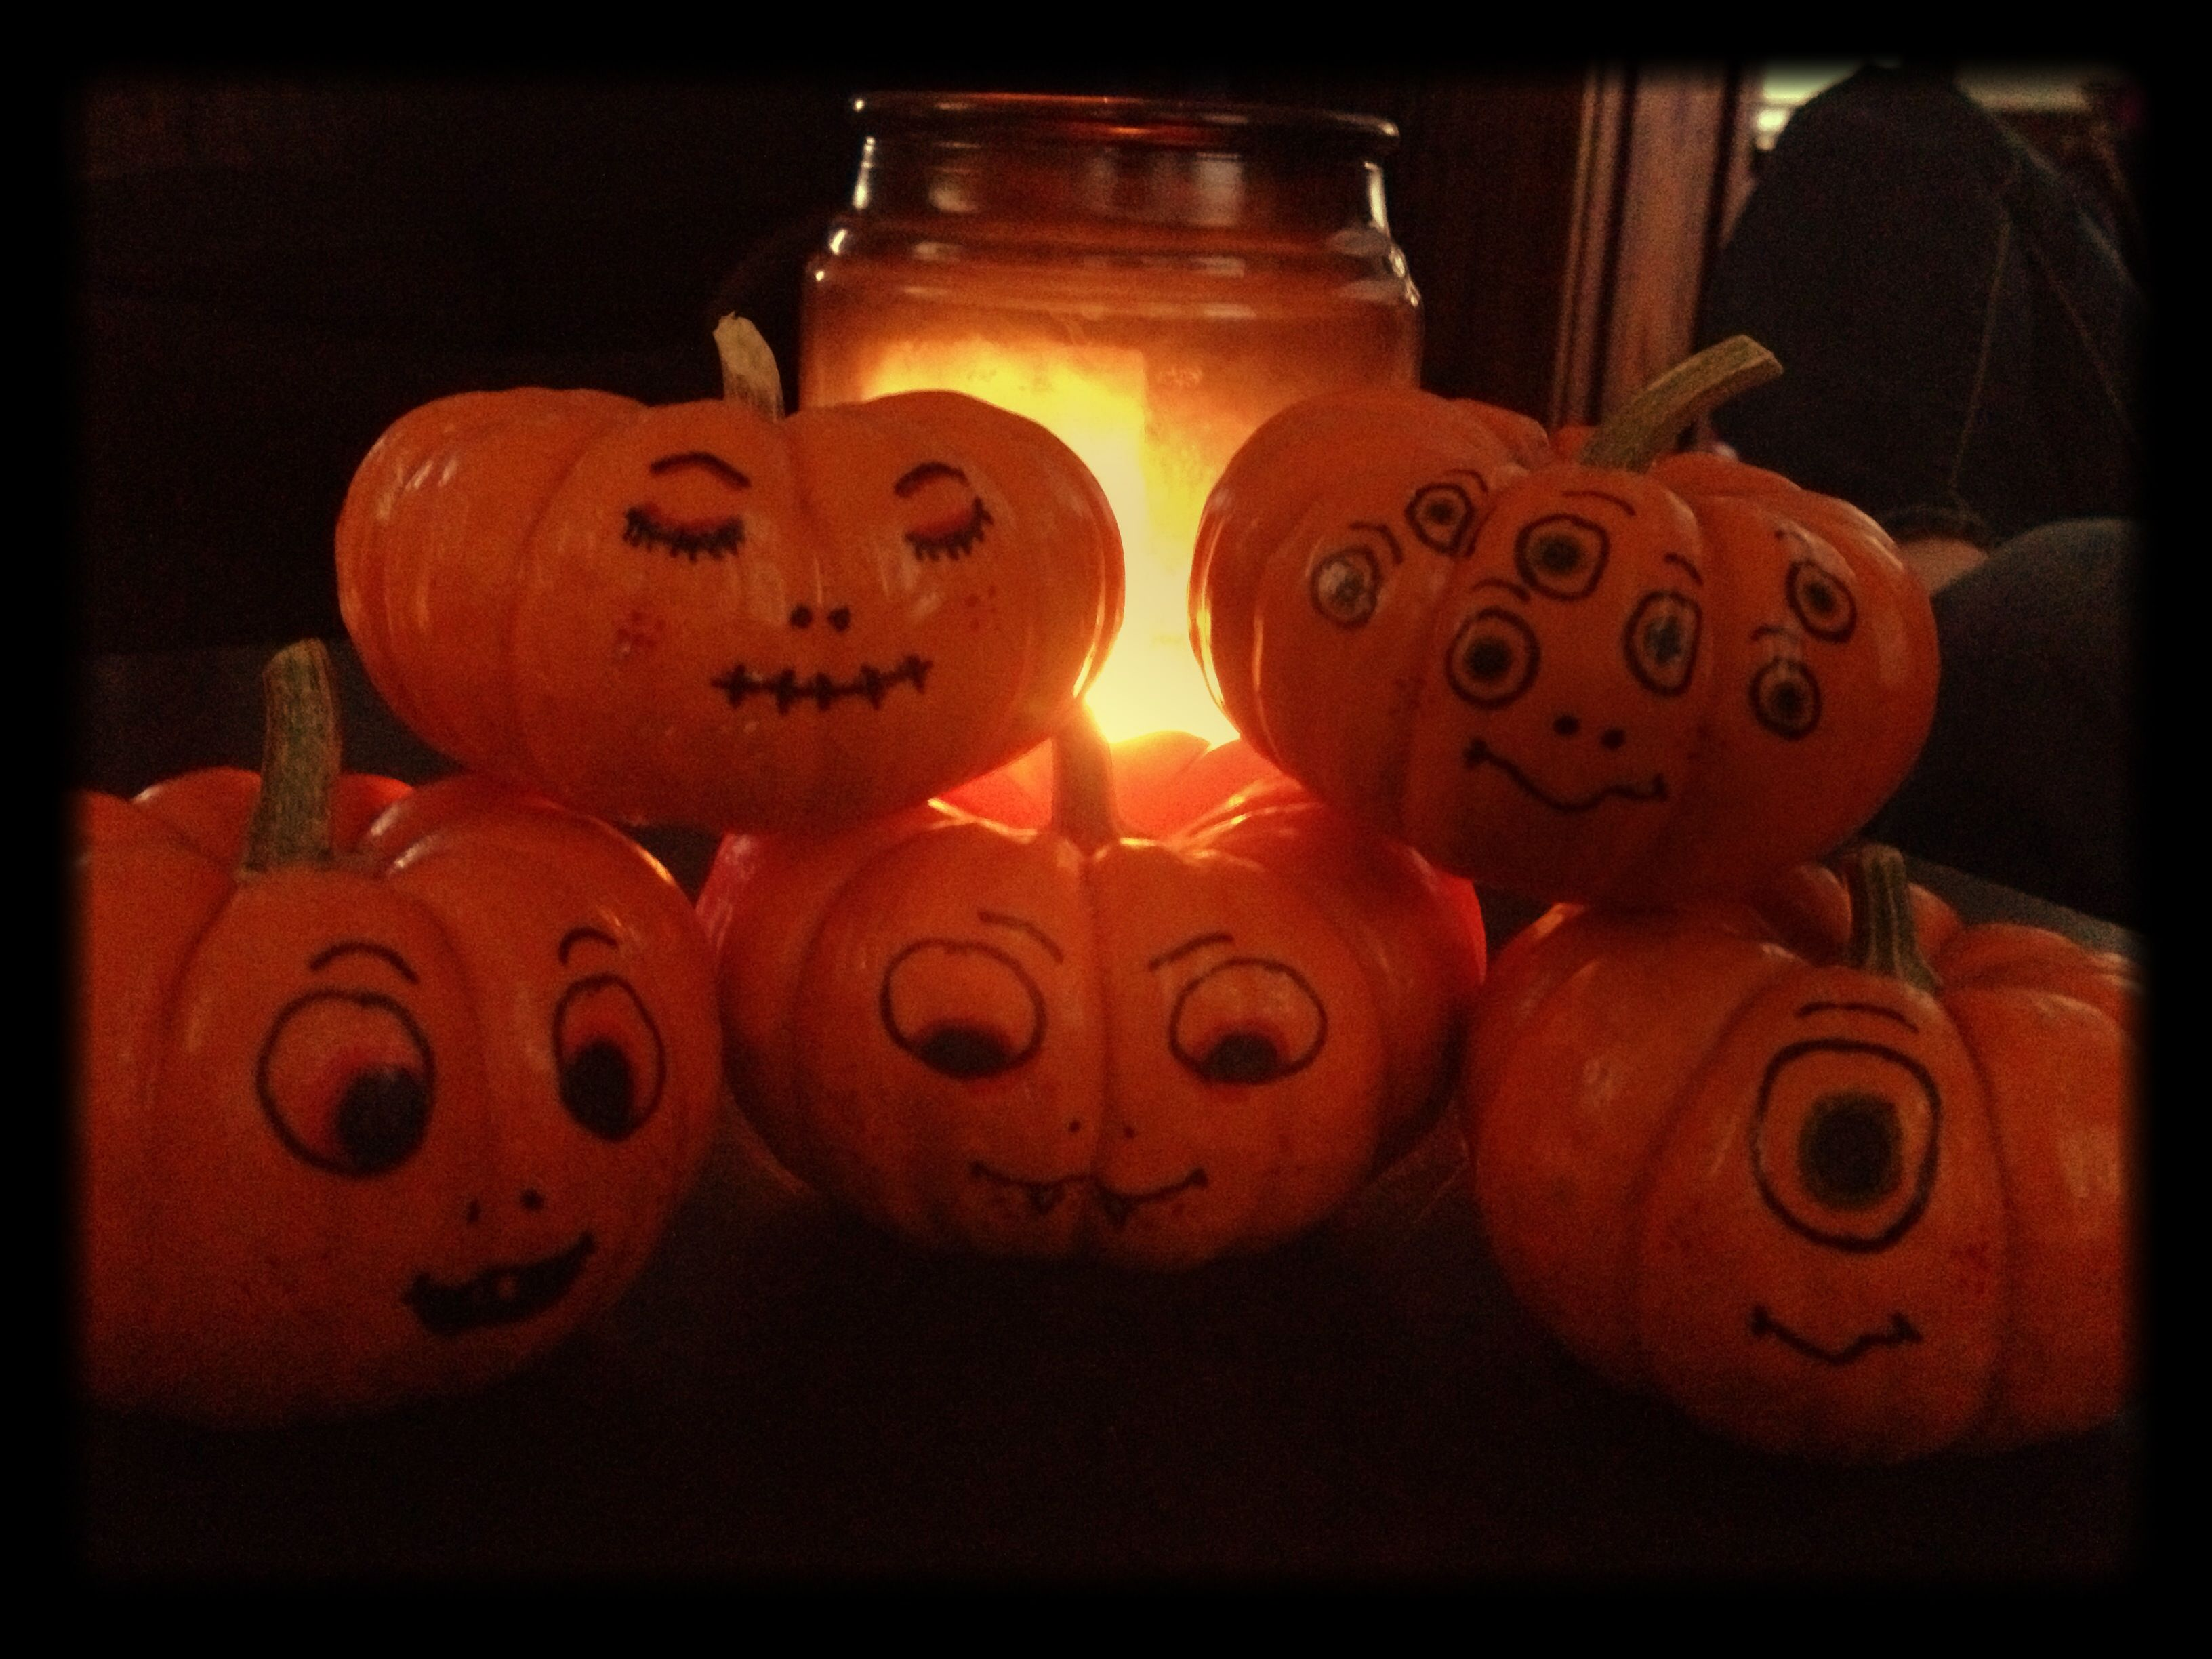 decorating mini pumpkins! Use sharpies to draw cute or